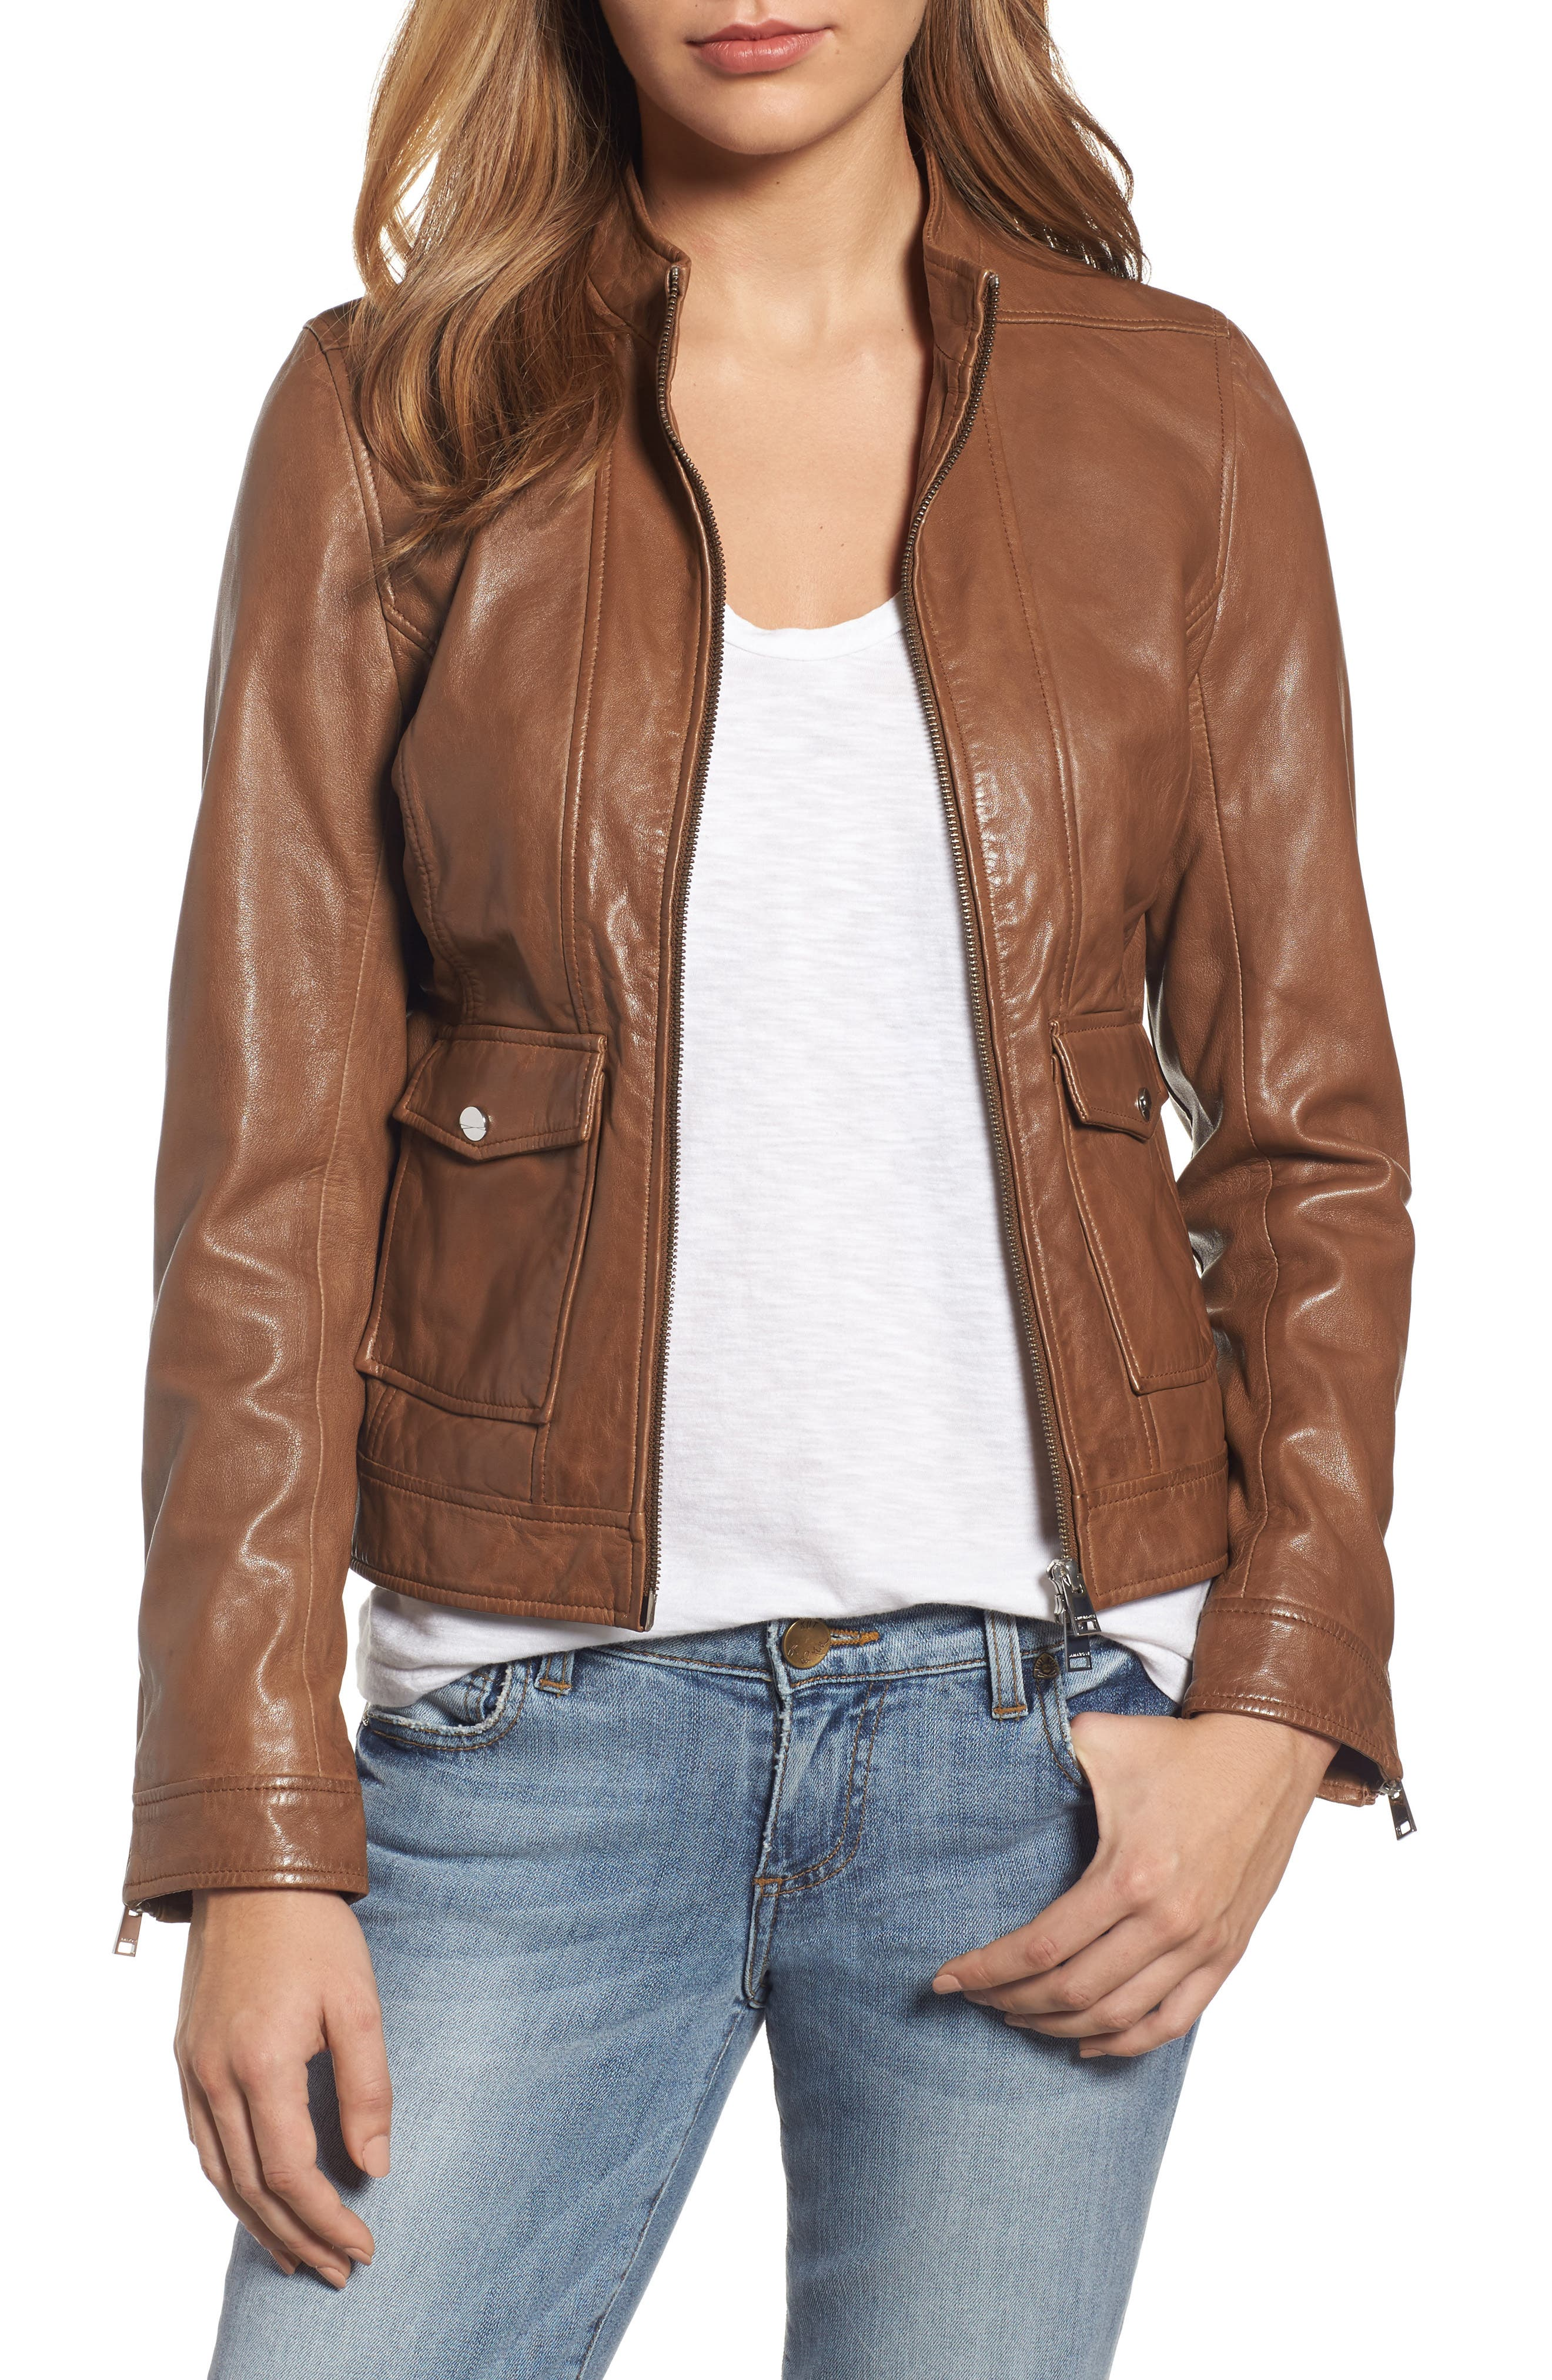 Alternate Image 1 Selected - LAMARQUE Patch Pocket Leather Biker Jacket